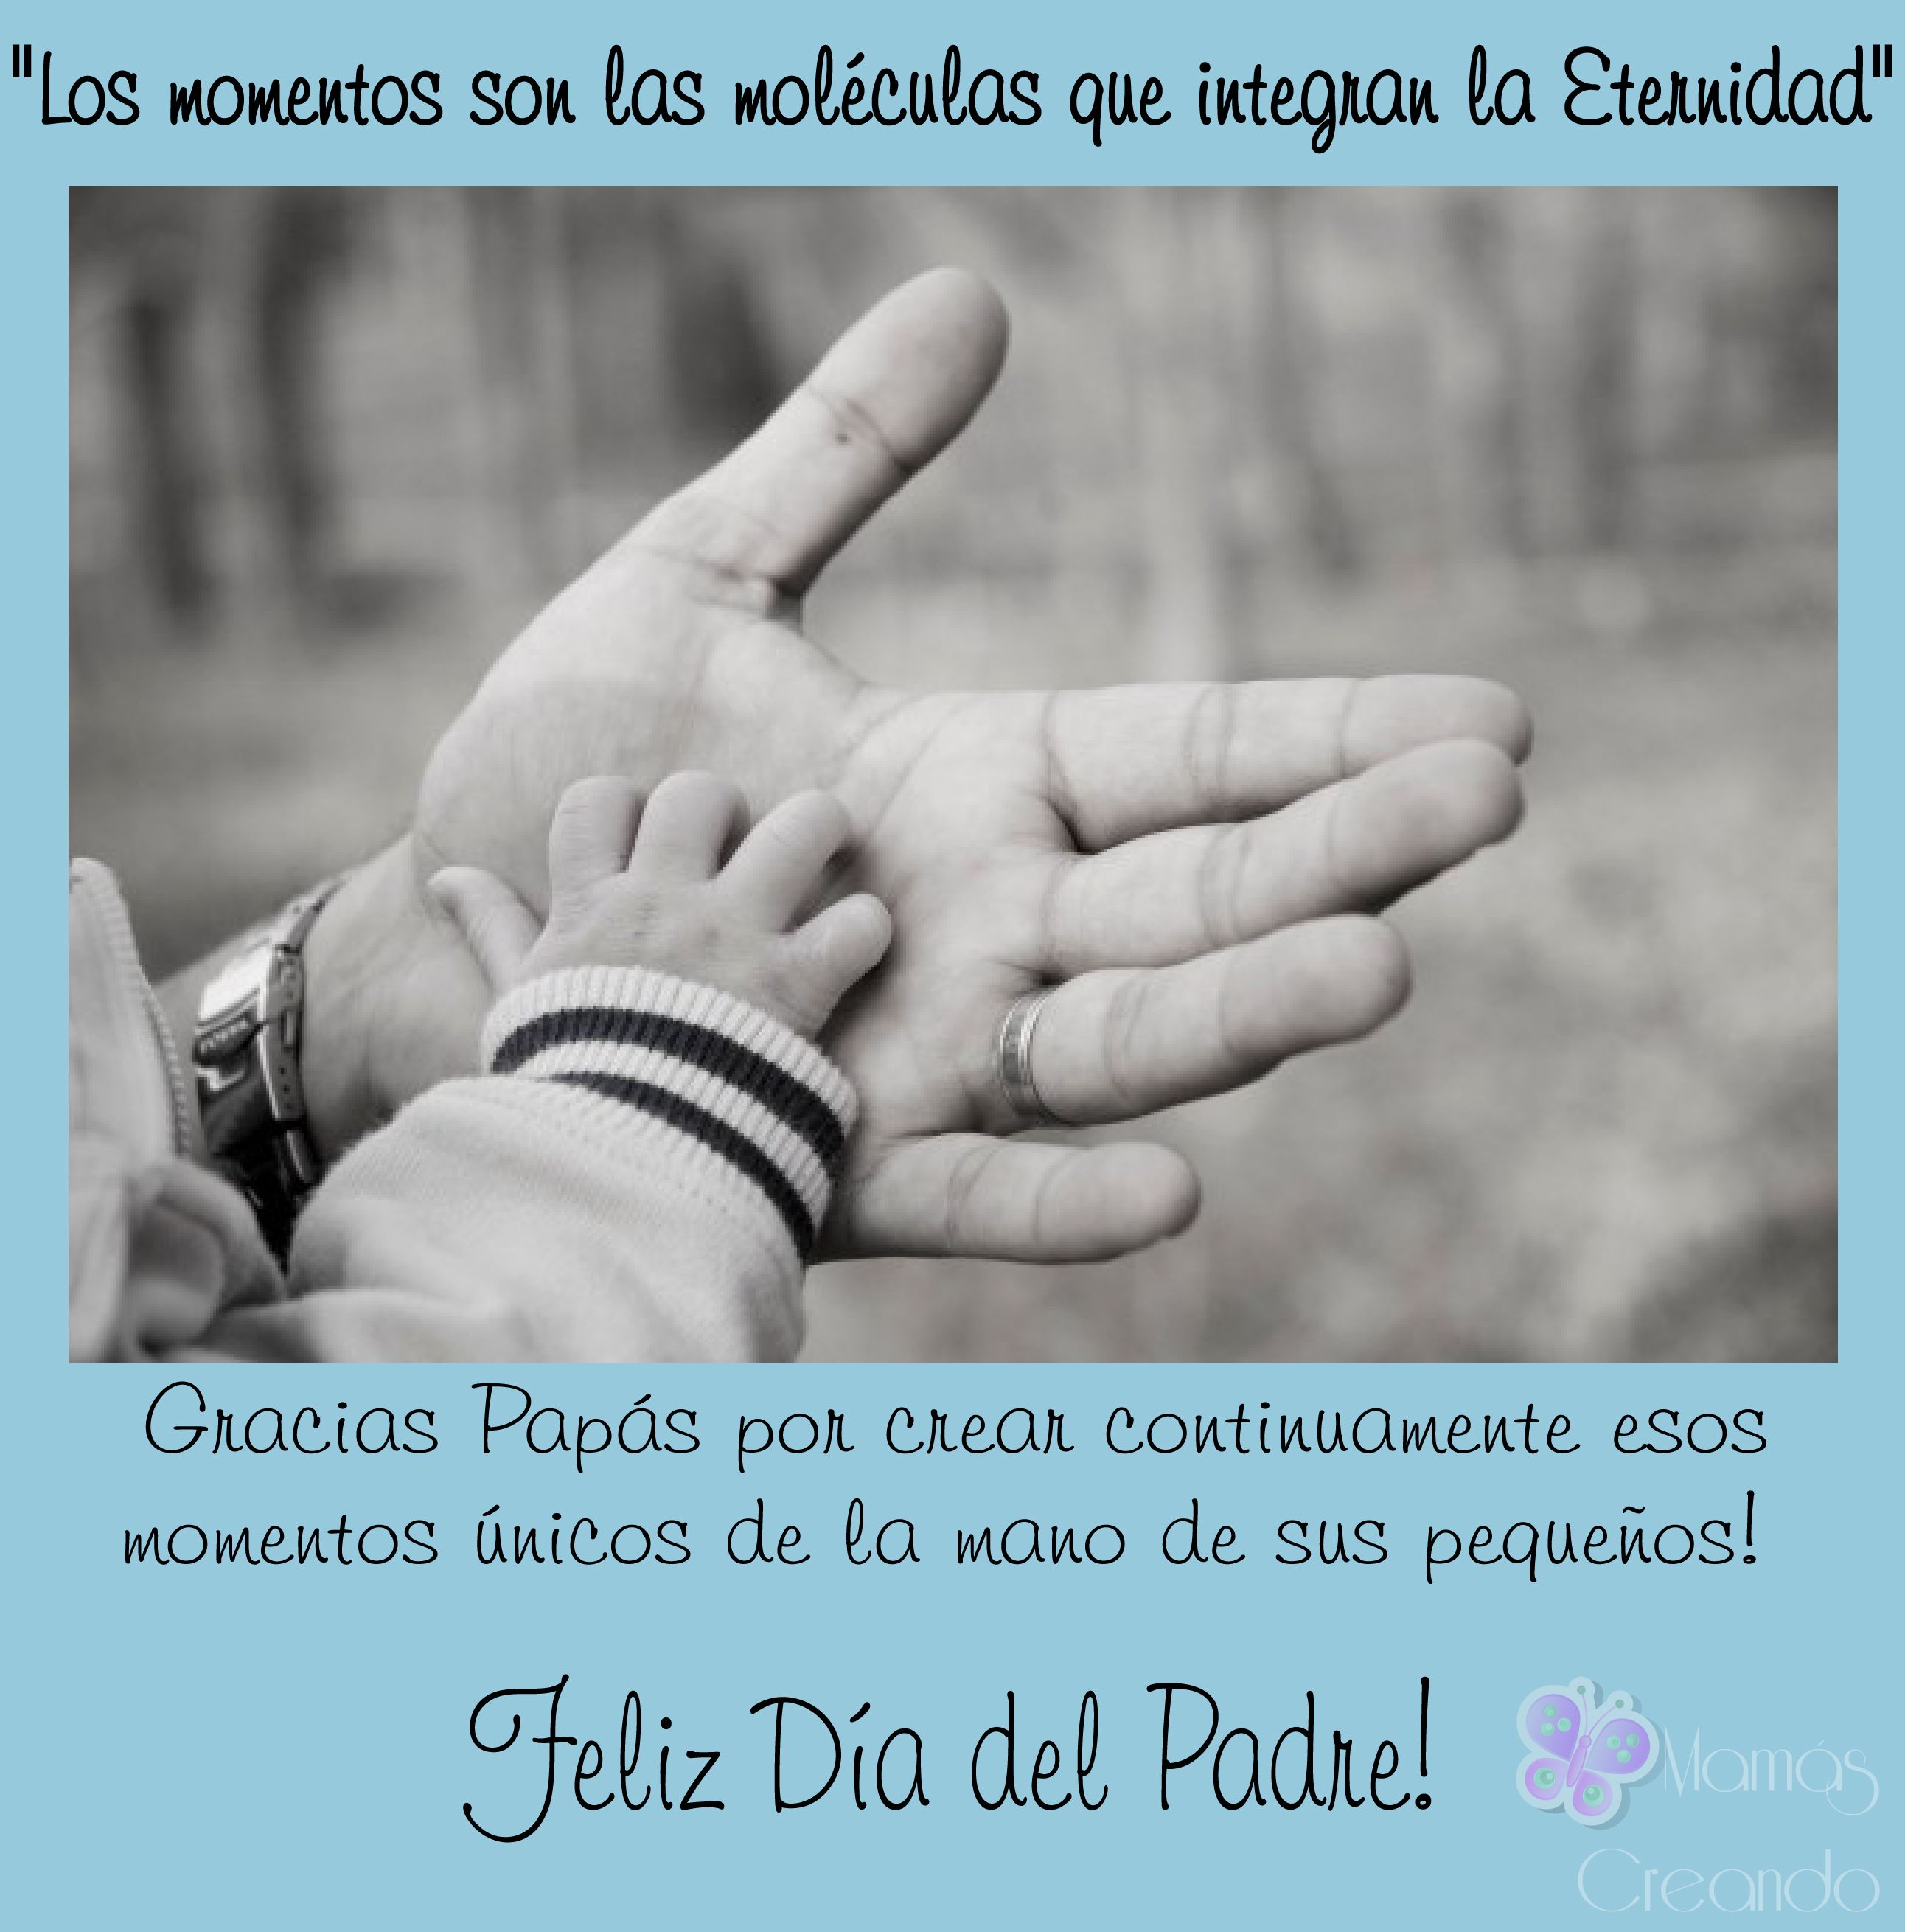 Felicidades a todos los papás!  Moments Are the molecules that make up Eternity!    Thank u  Dads for creating such beautiful moments holding your little ones´s hand   Happy Father´s Day!!